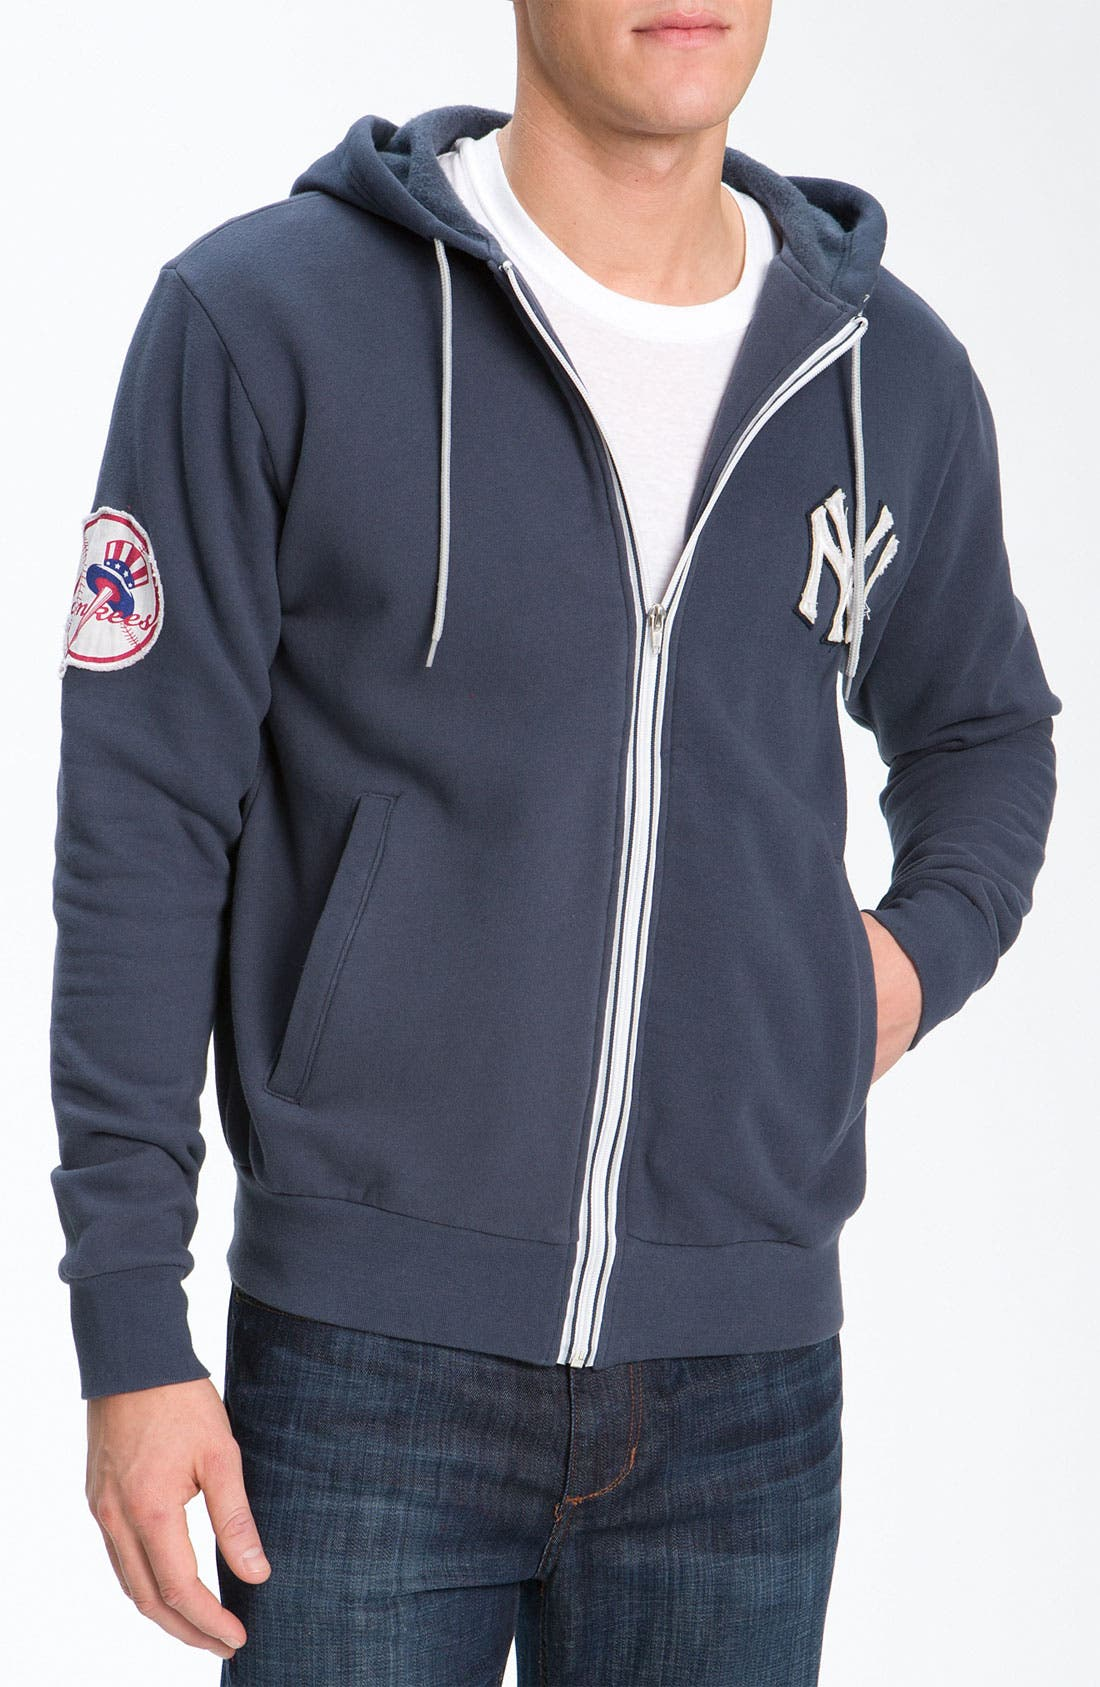 Alternate Image 1 Selected - Wright & Ditson 'New York Yankees' Hoodie